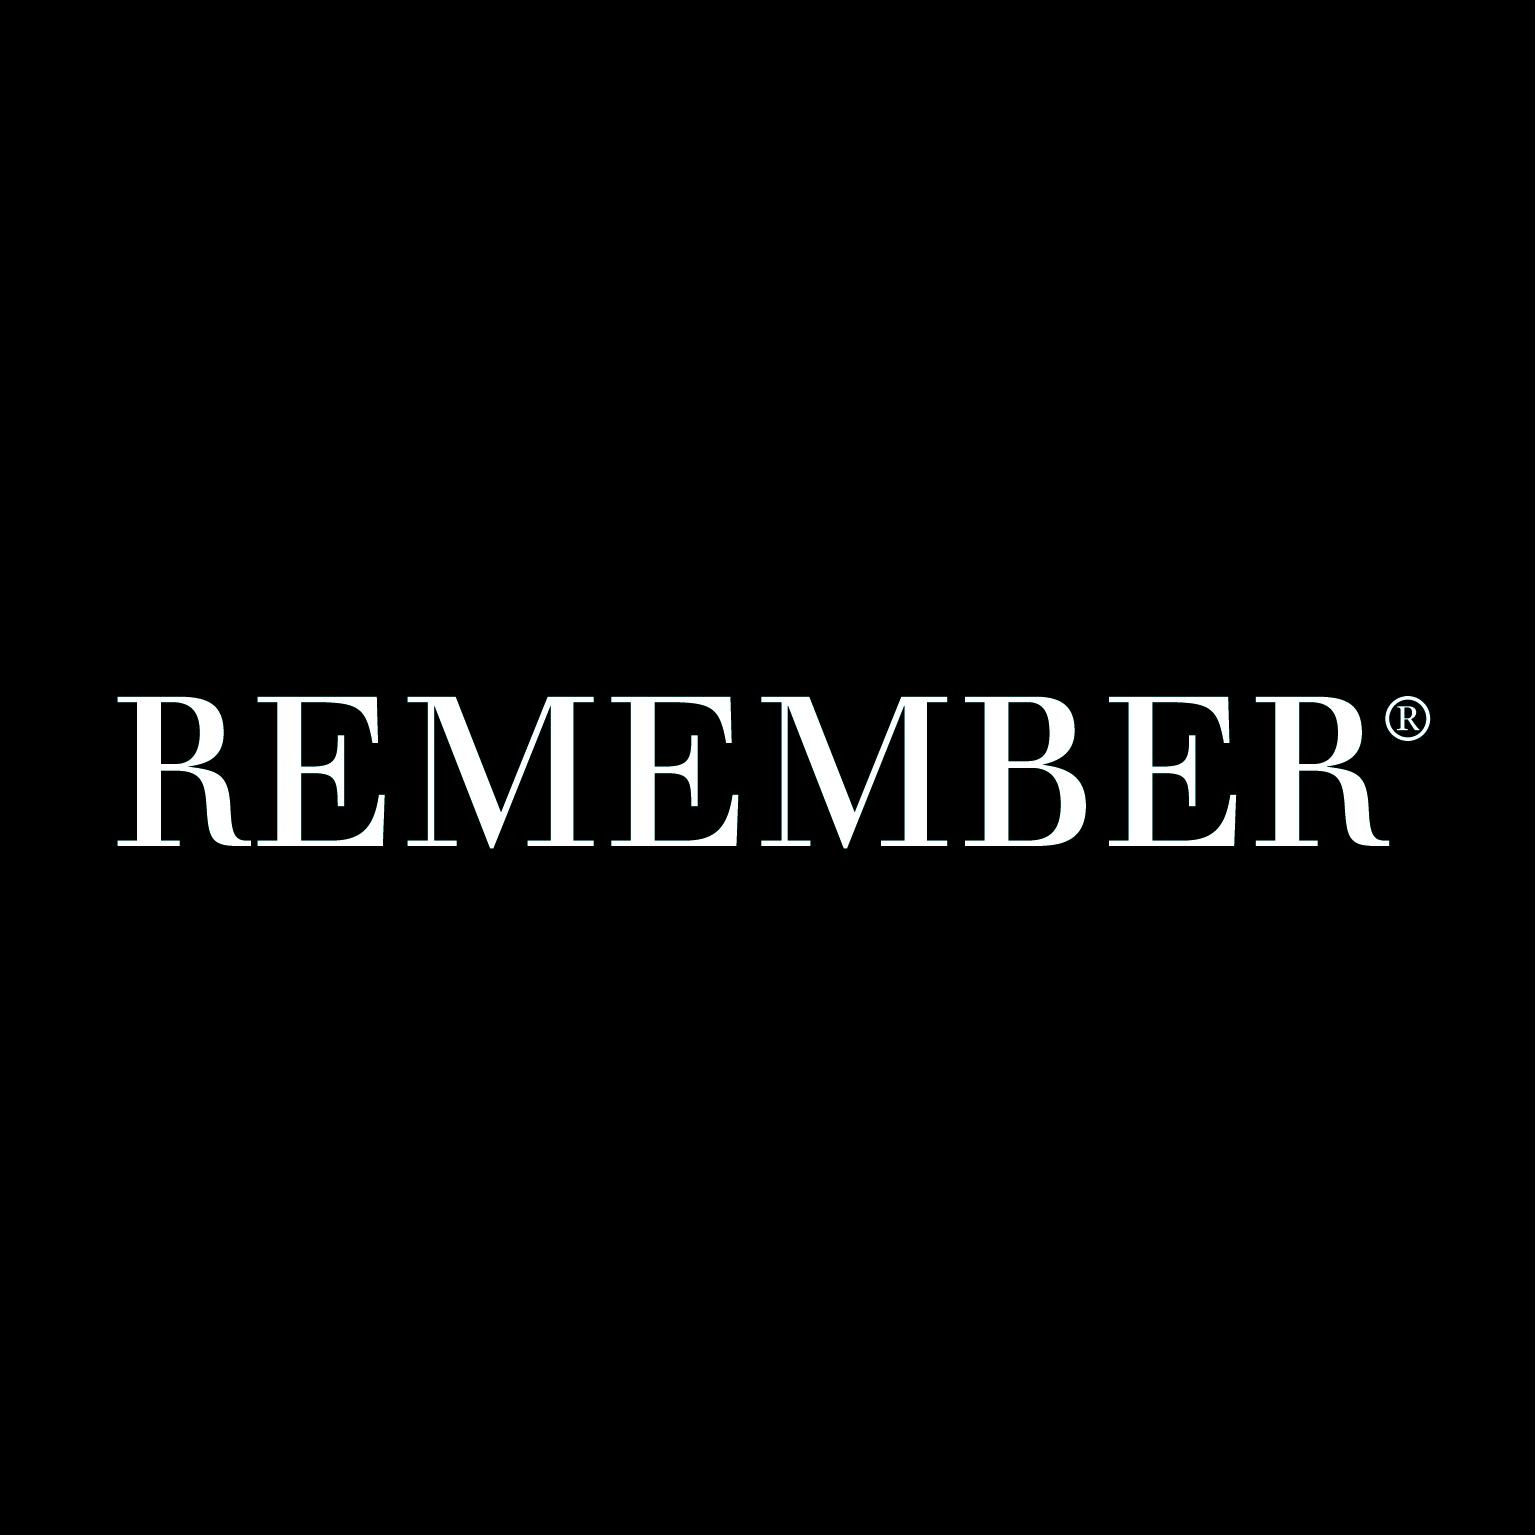 REMEMBER®